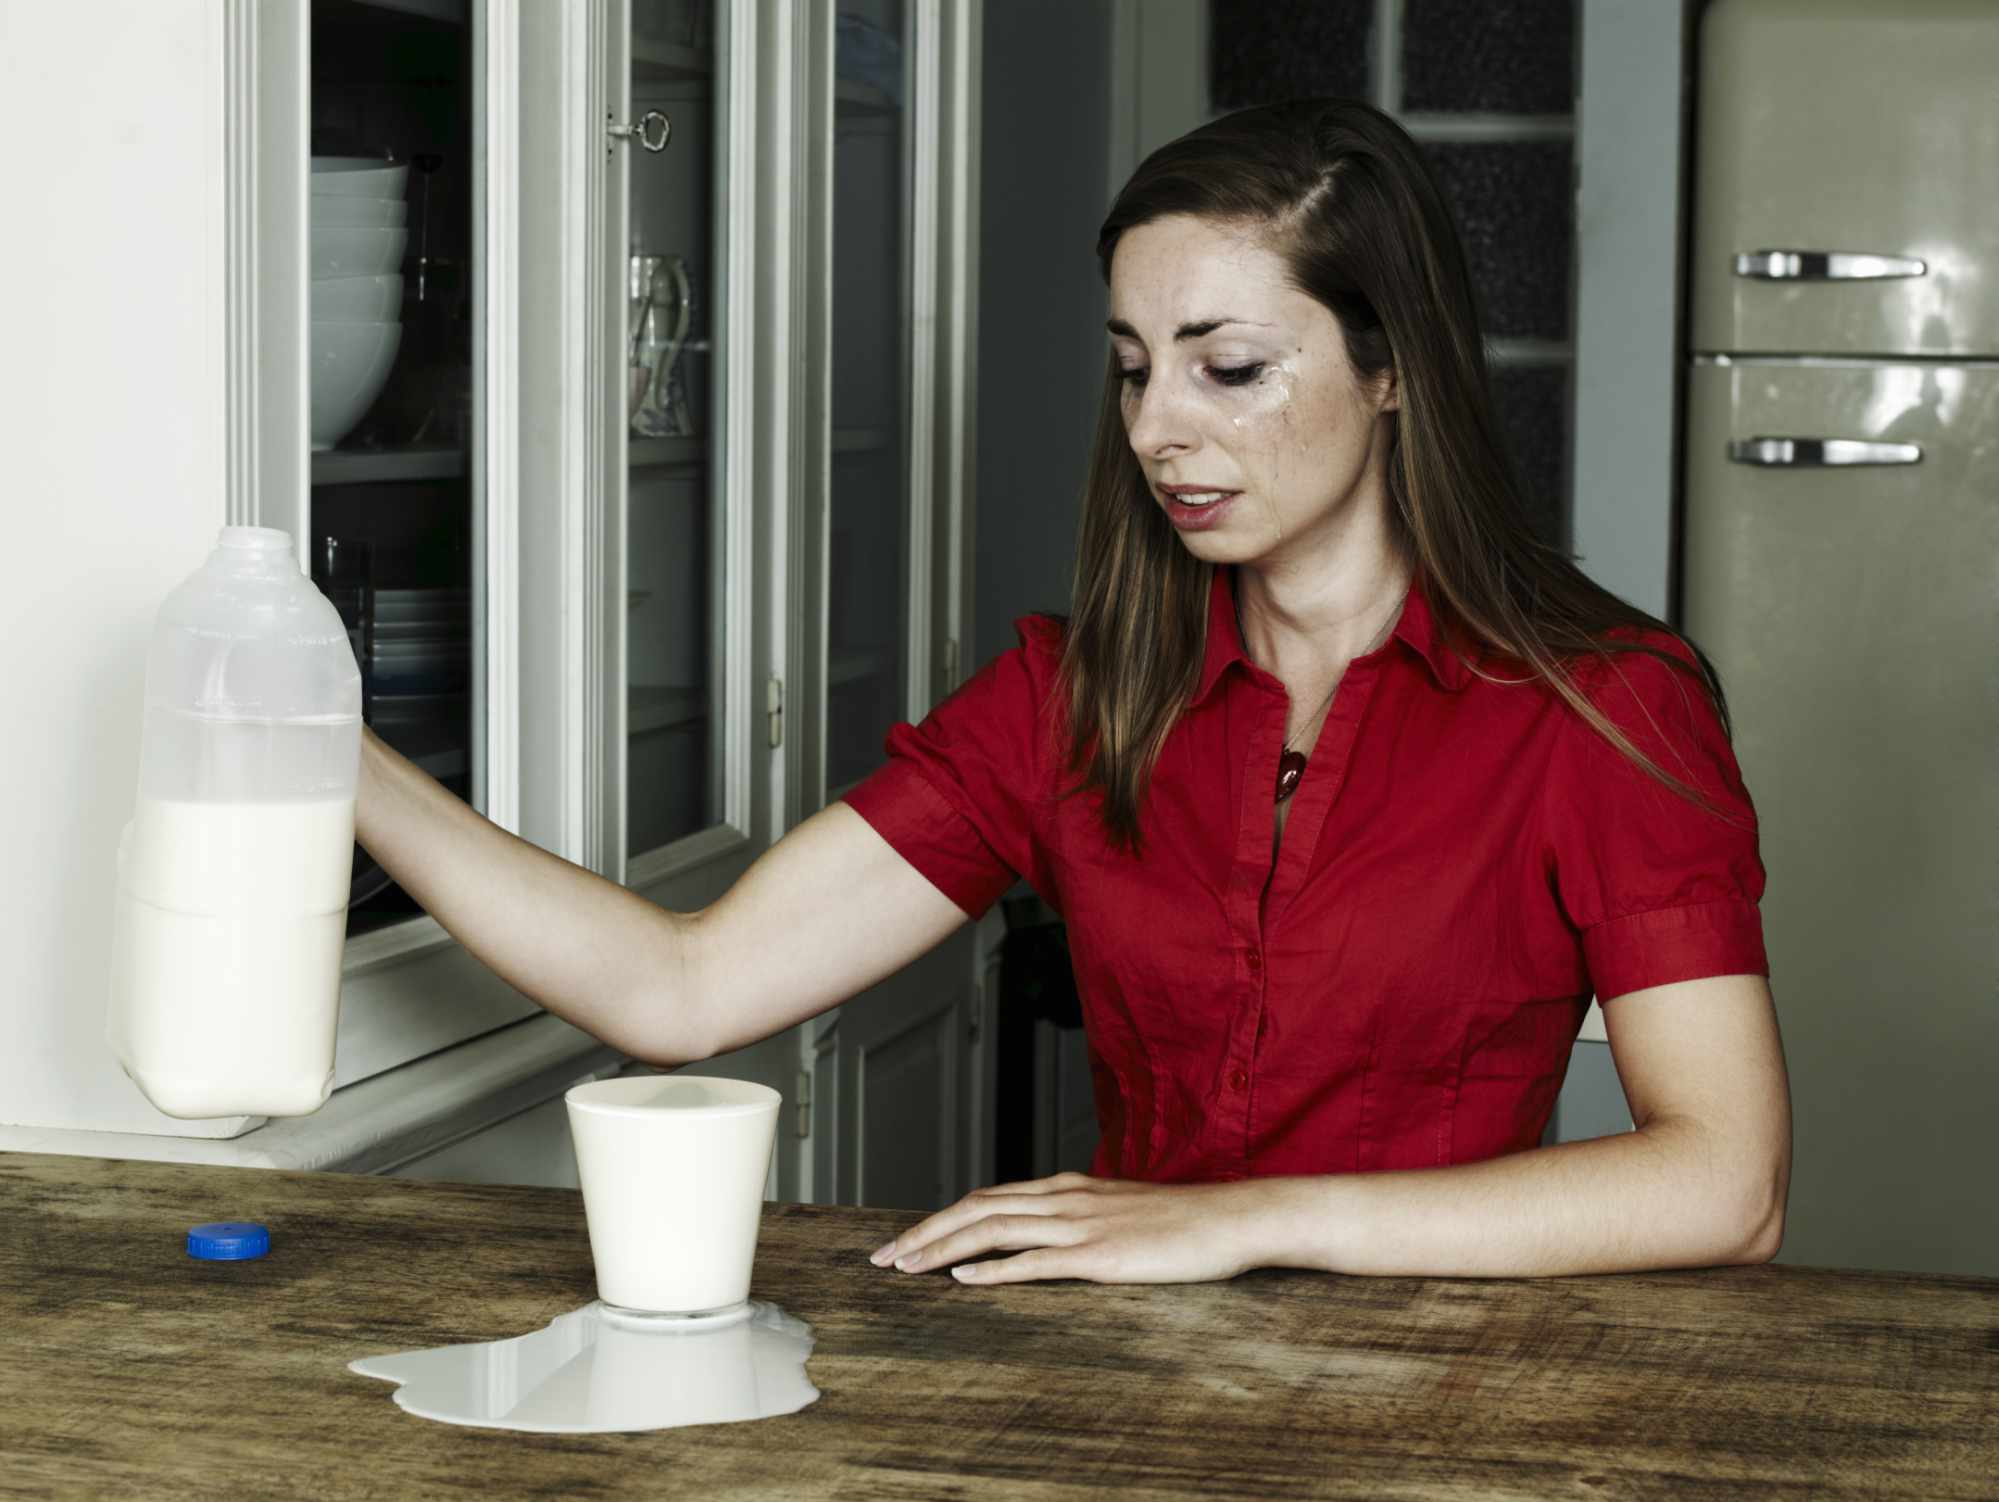 Woman accidentally pouring too much milk